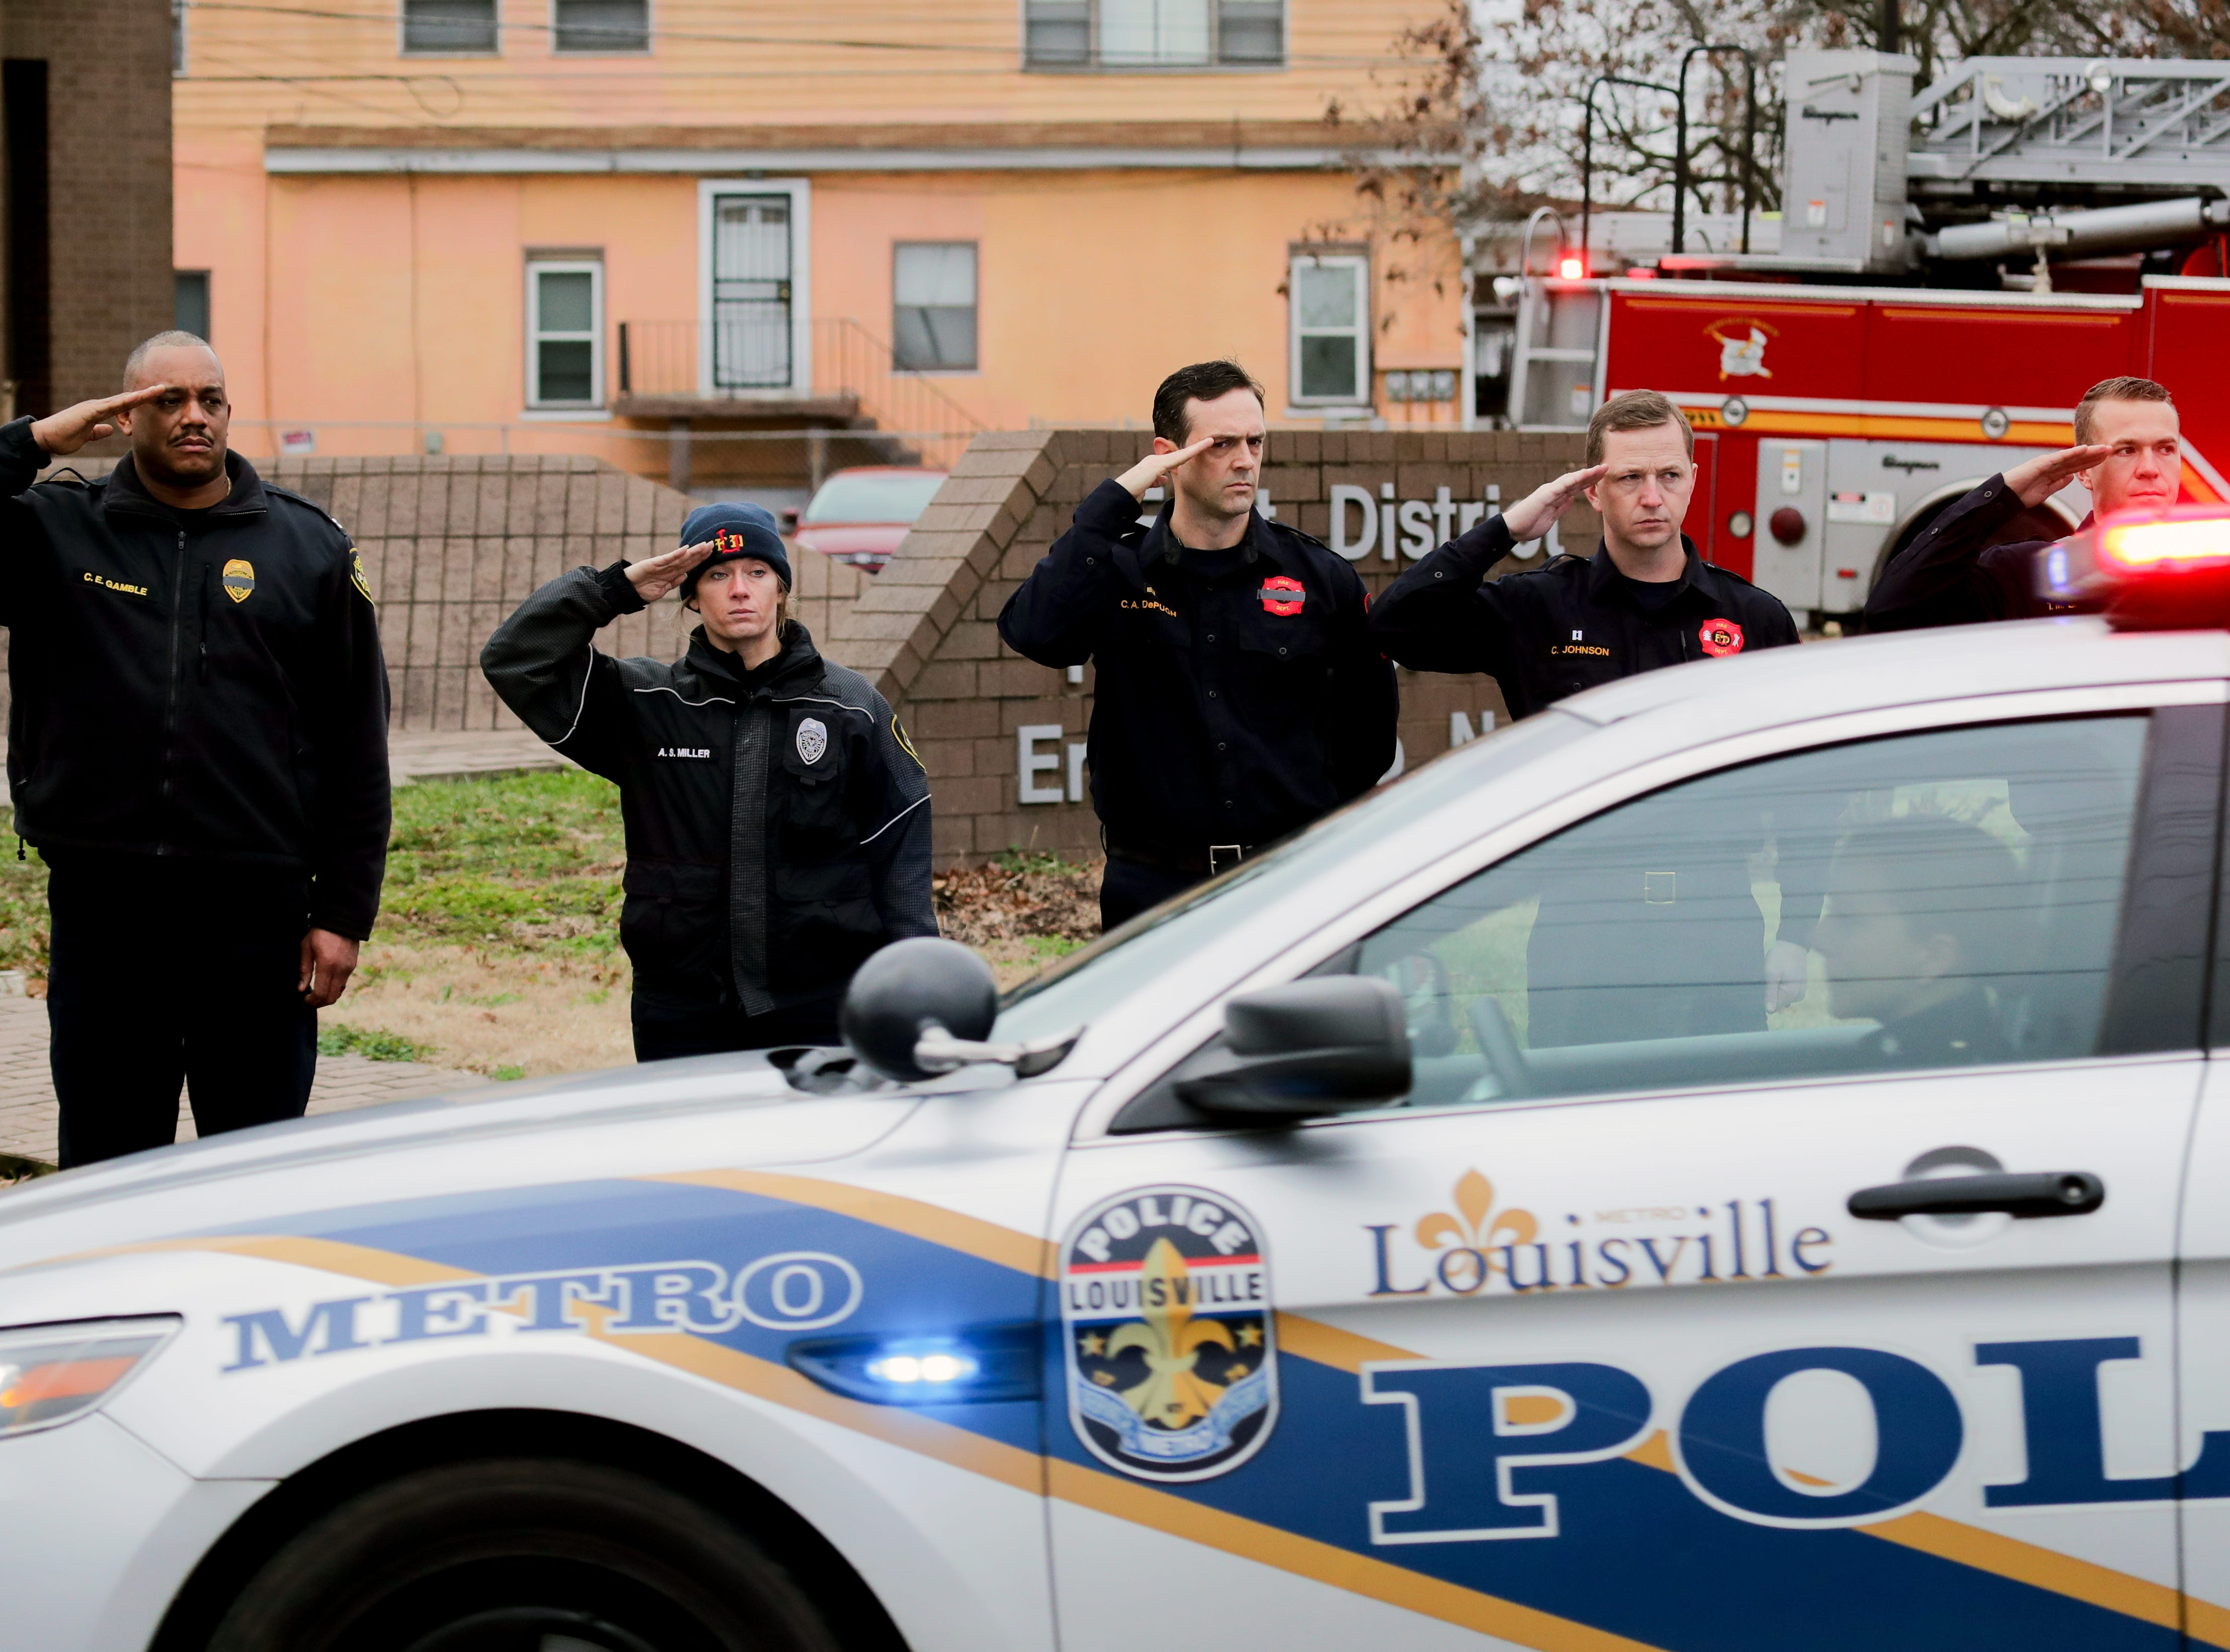 LMPD's Det. Deidre Mengedoht's procession came down River Park as it made it's way through the community she served. 